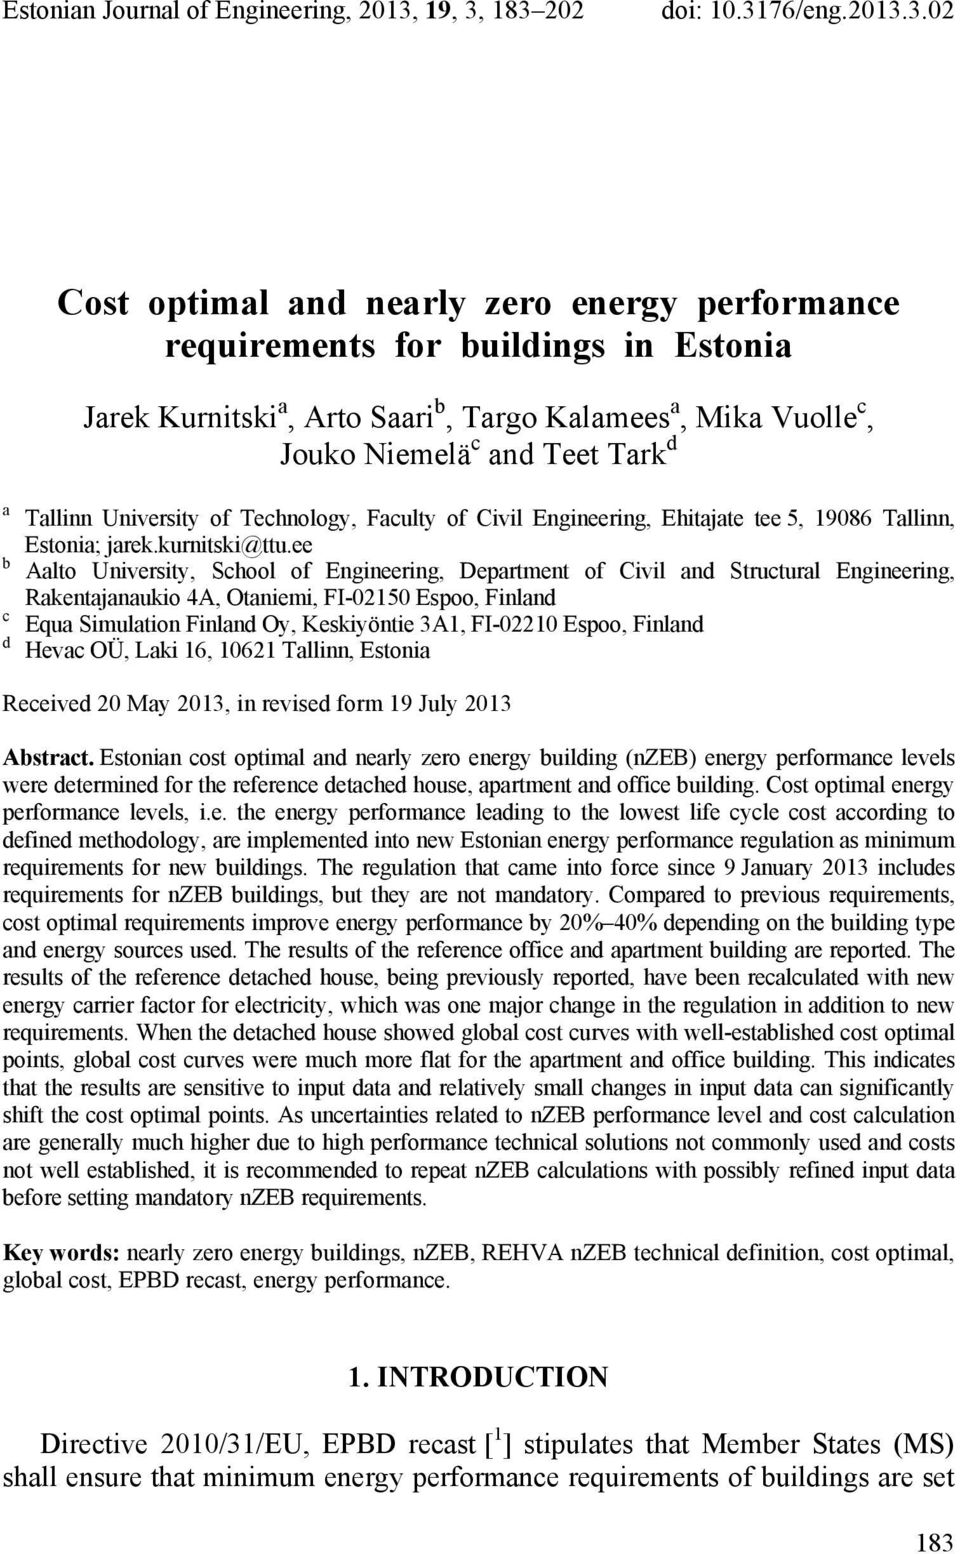 183 202 doi: 10.3176/eng.2013.3.02 Cost optimal and nearly zero energy performance requirements for buildings in Estonia Jarek Kurnitski a, Arto Saari b, Targo Kalamees a, Mika Vuolle c, Jouko